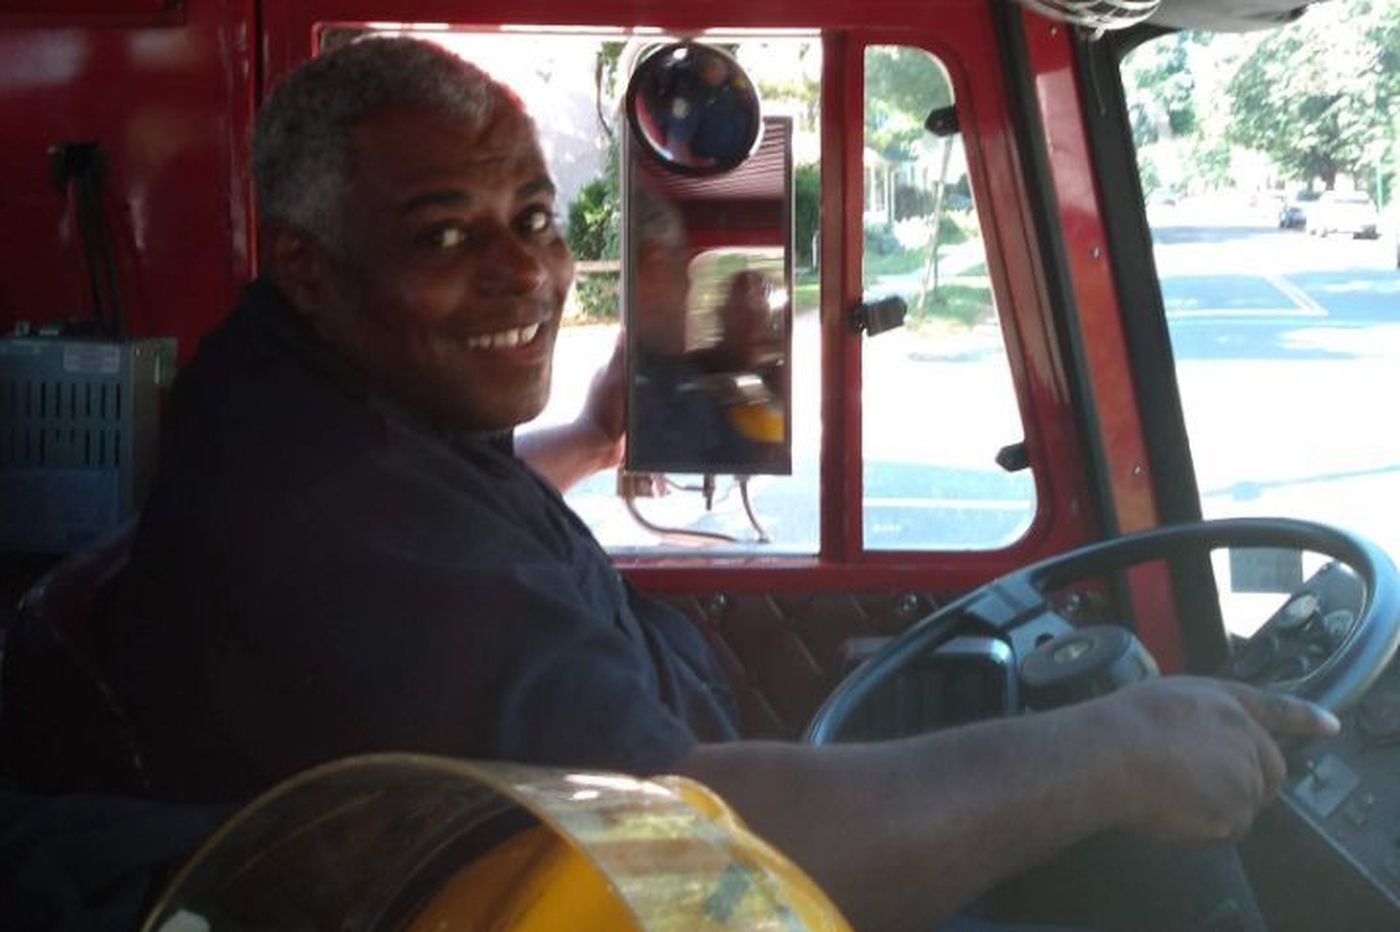 Eric Gore, 48, carried on a family tradition as a Philadelphia firefighter